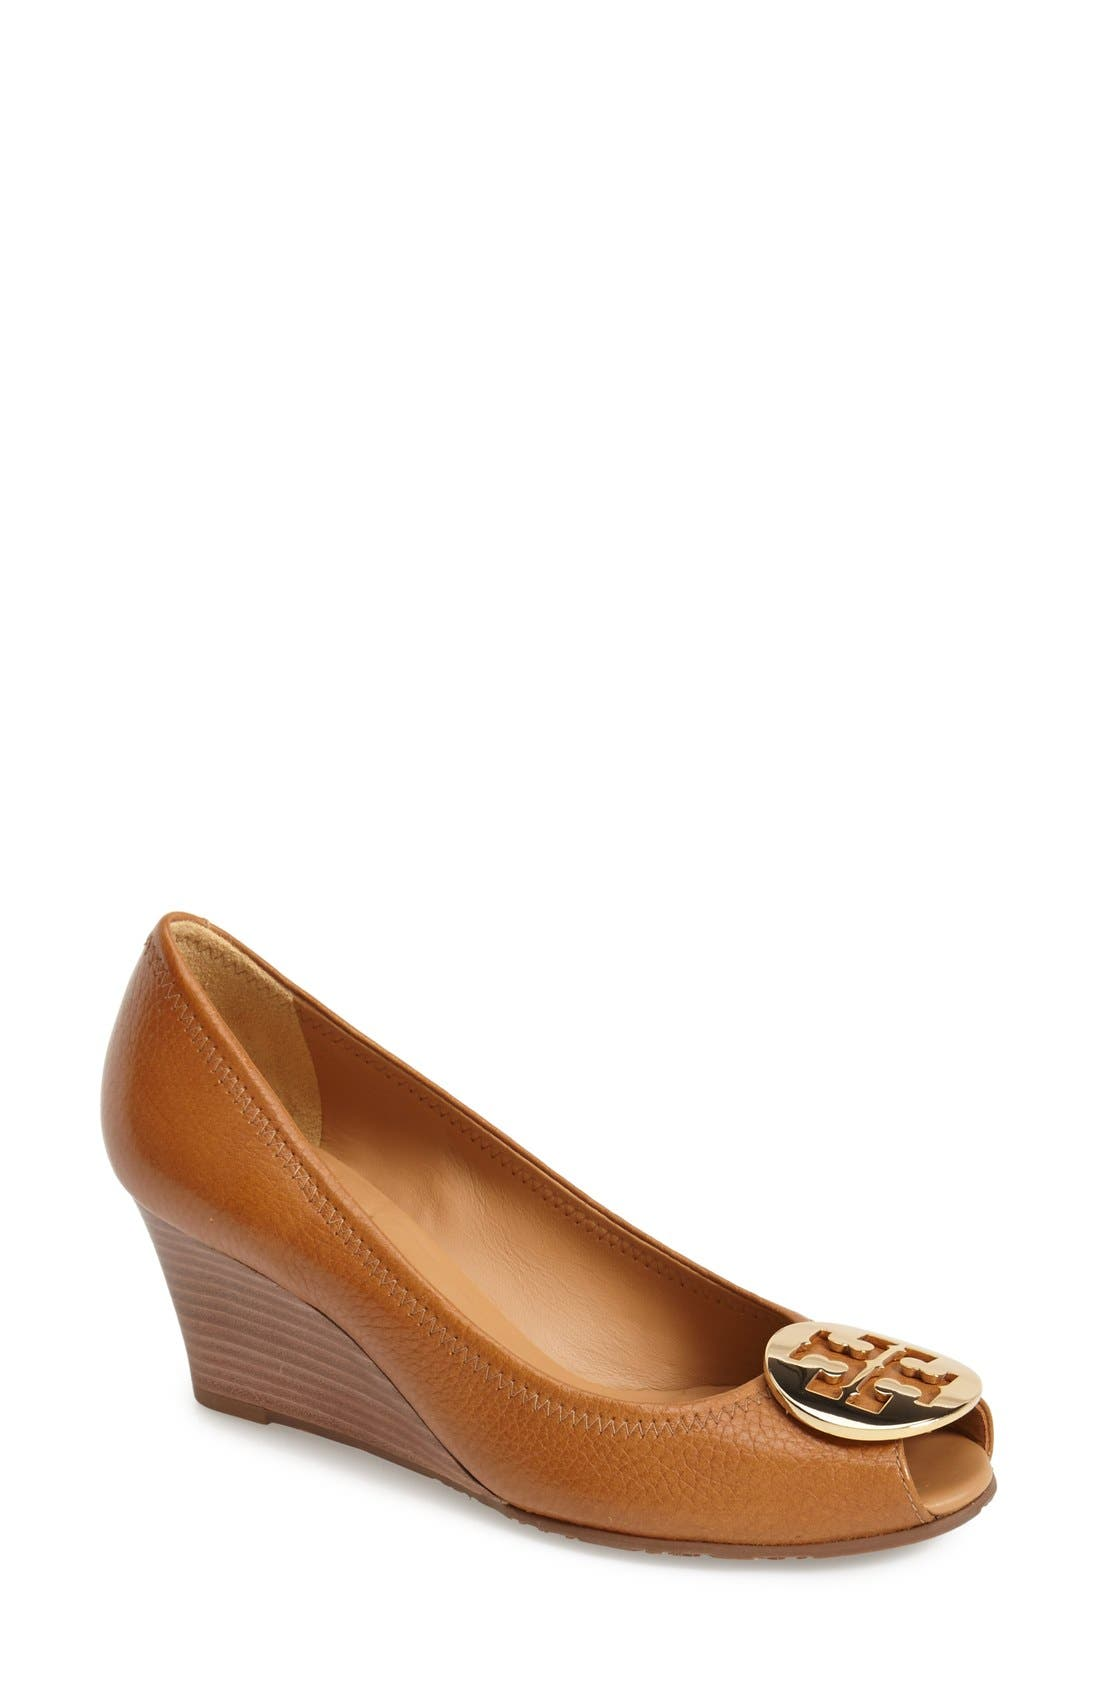 Alternate Image 1 Selected - Tory Burch 'Sally 2' Peep Toe Wedge Pump (Women)